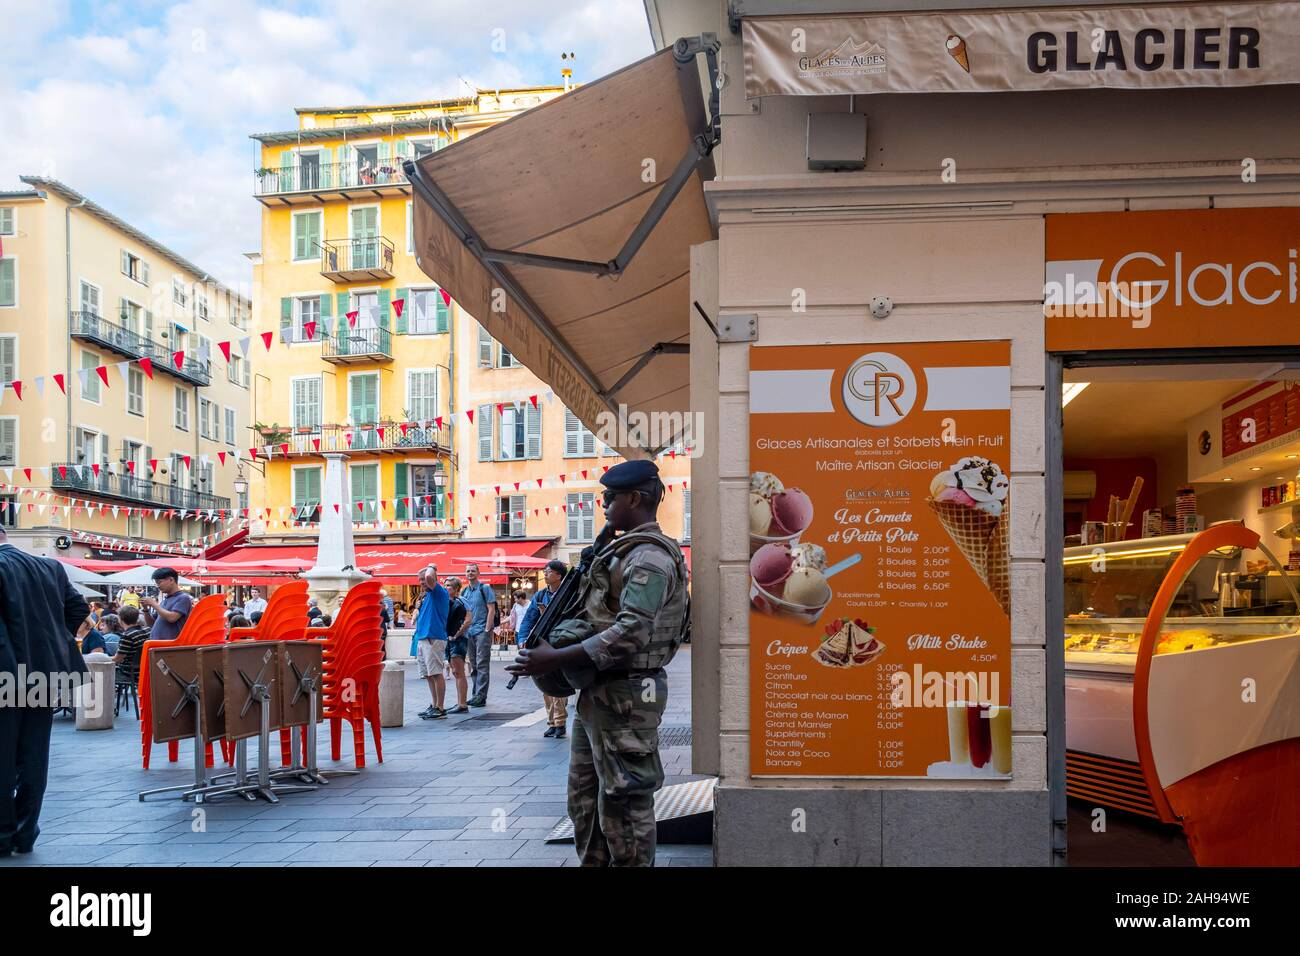 A young black male French army security officer with a beret and automatic rifle stands guard inside city center in Nice, France. Stock Photo